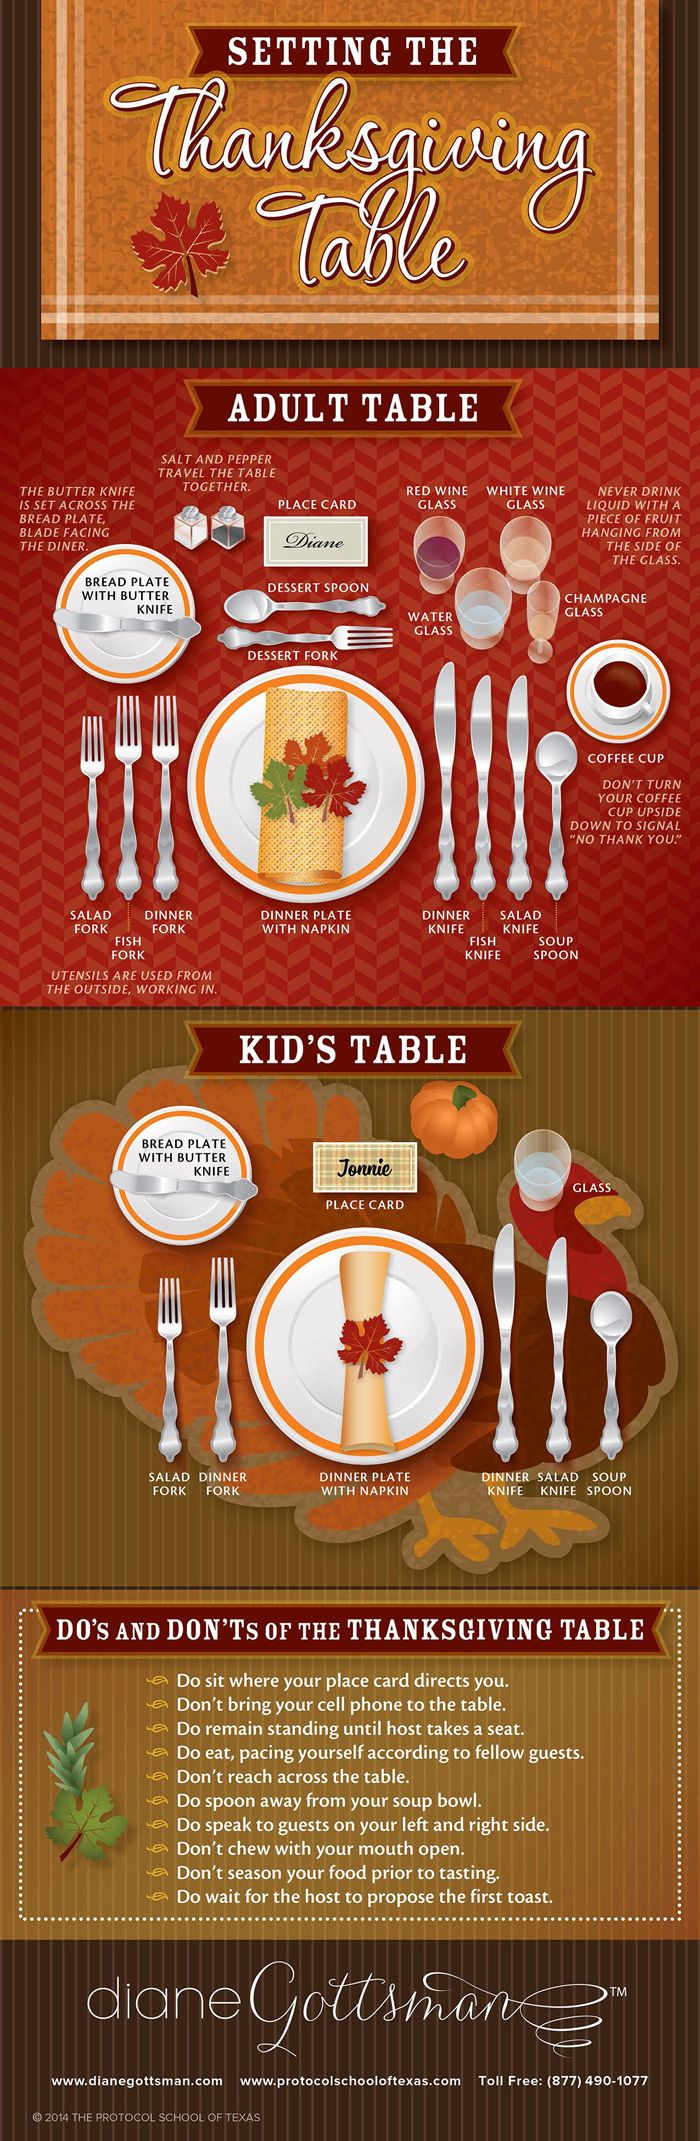 Thanksgiving Place Setting Guide For Both S And Children Great Info